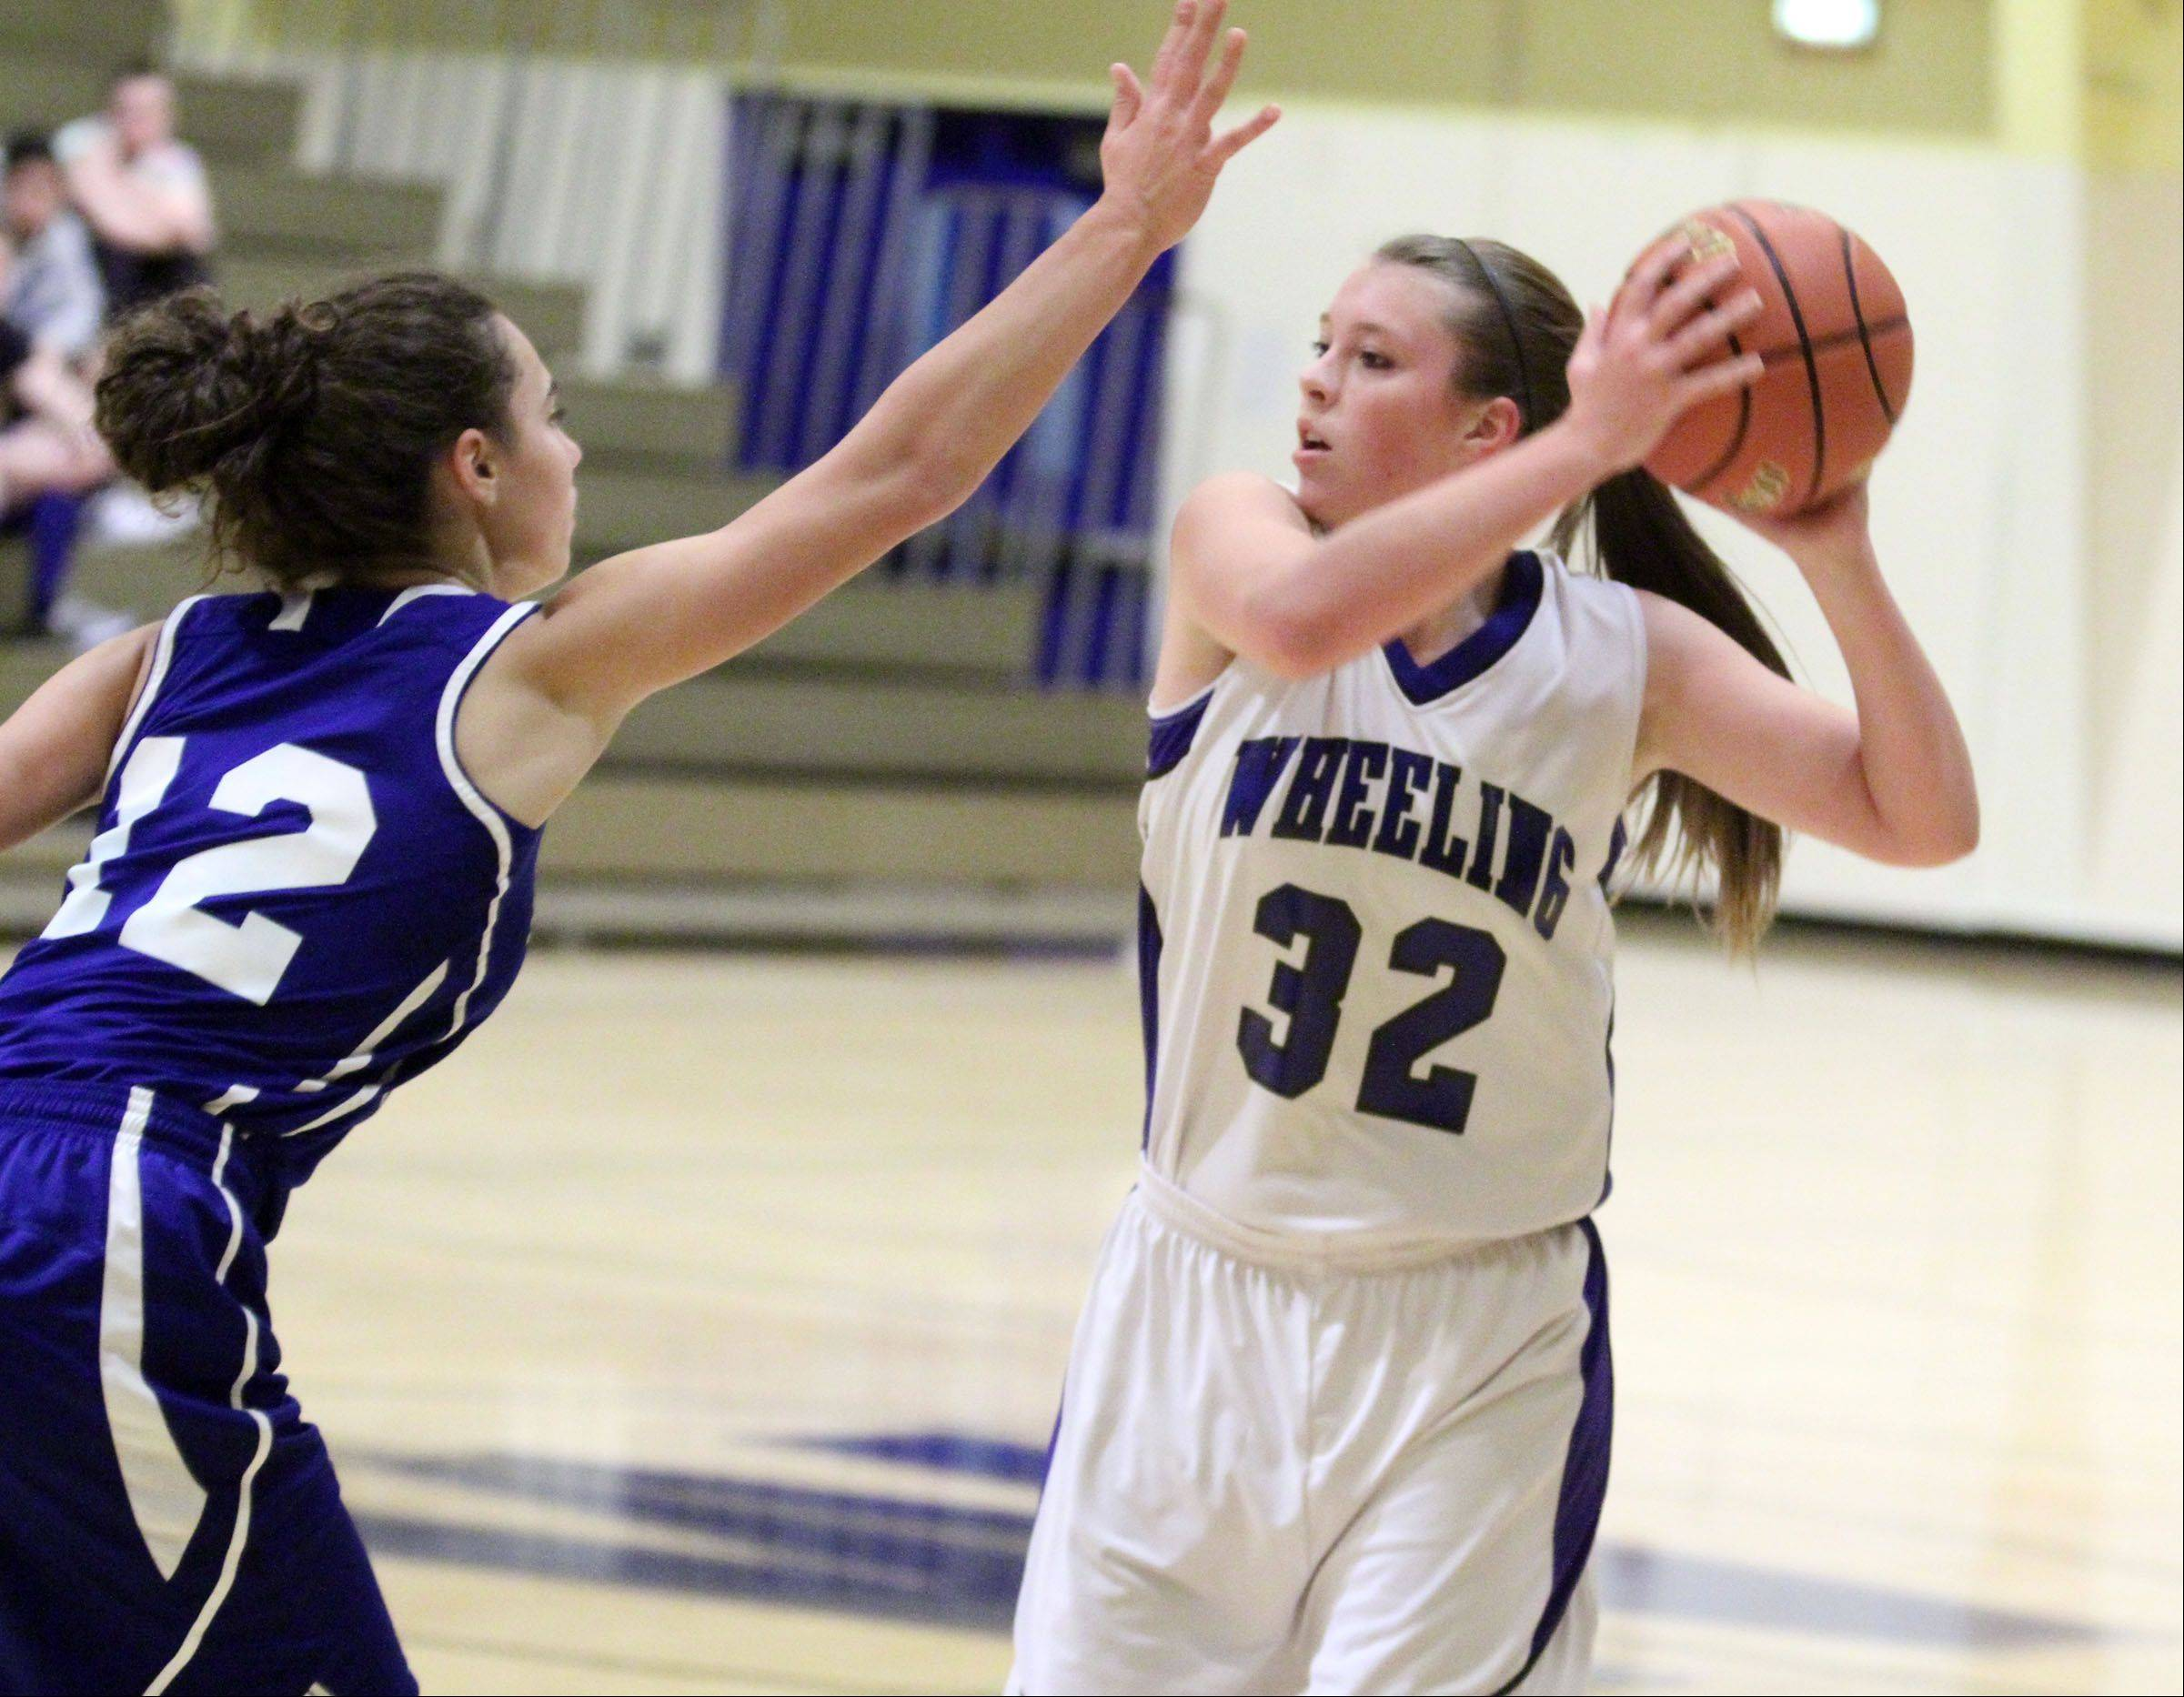 Wheeling's Brie Majkowski looks to pass over Highland Park defender Tina Berardi at Wheeling on Thursday.